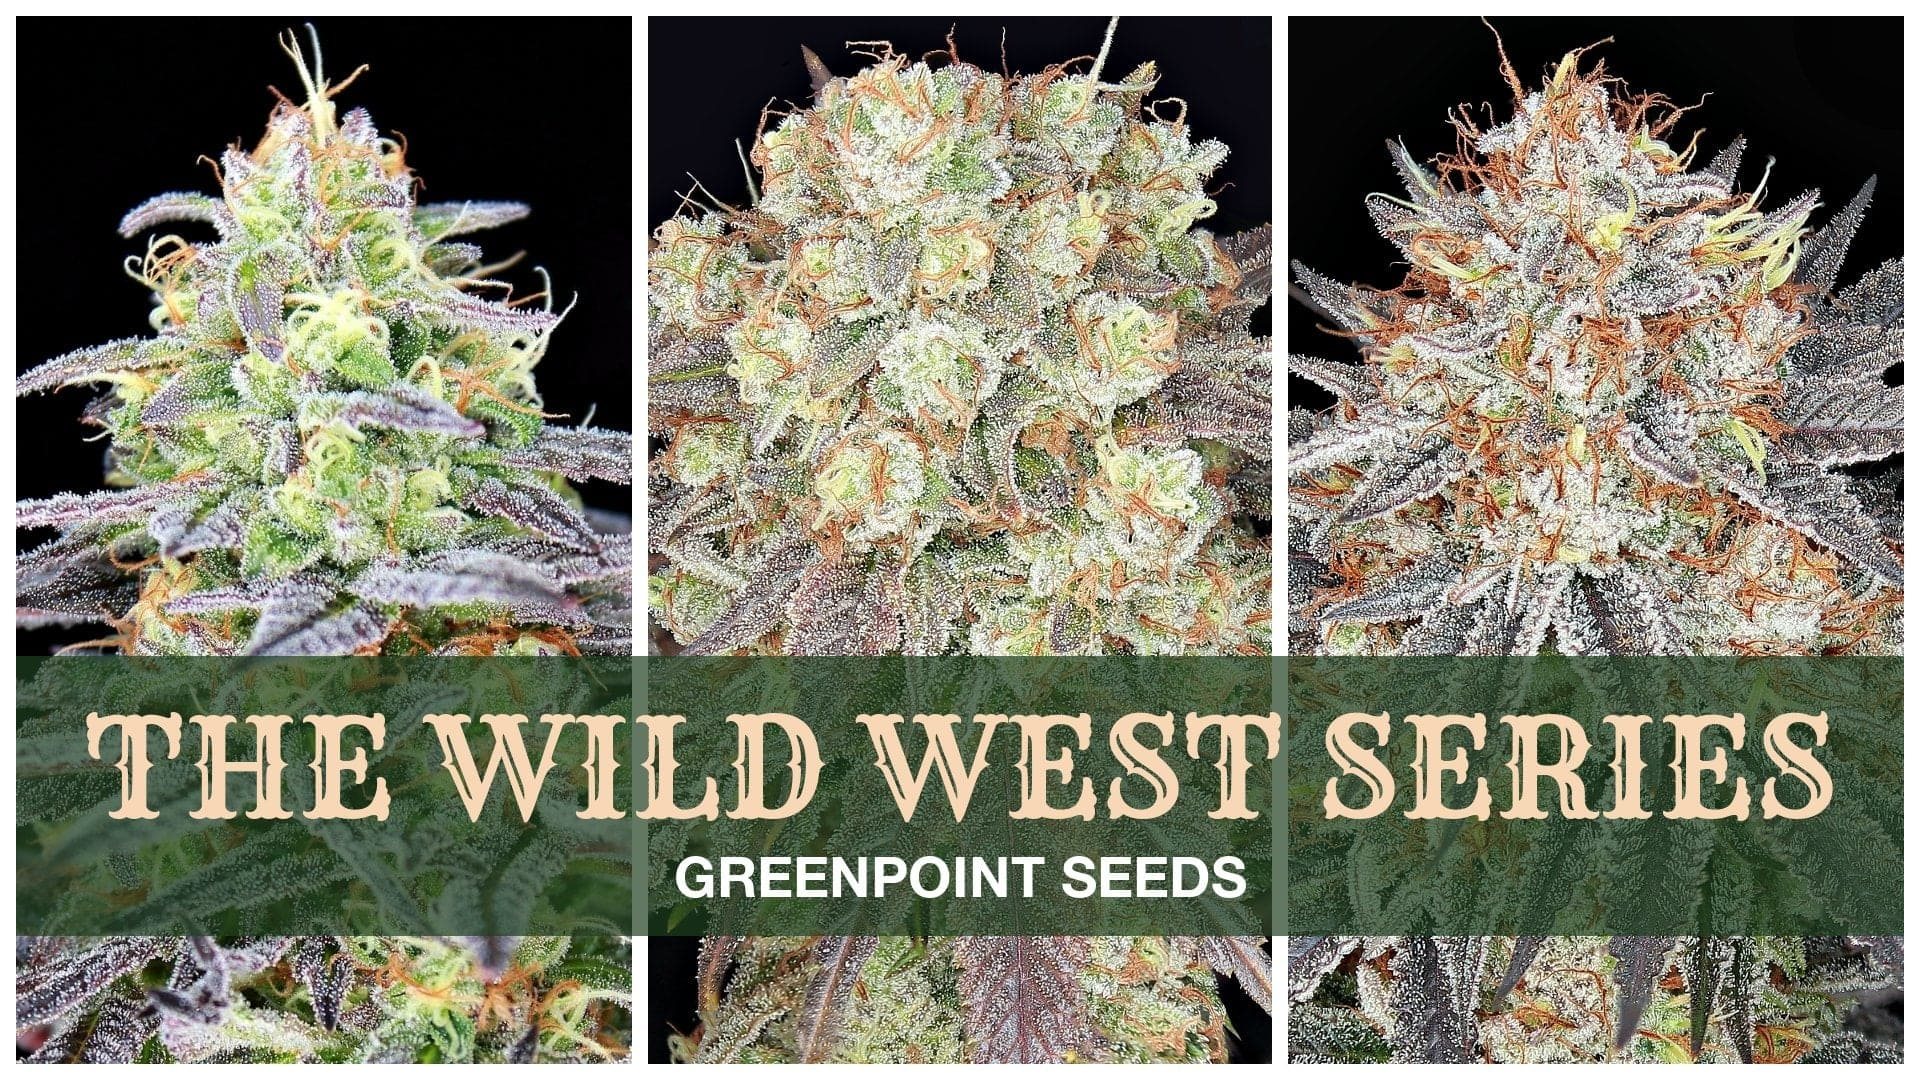 Greenpoint Seeds - Wild West Series Cannabis Seeds